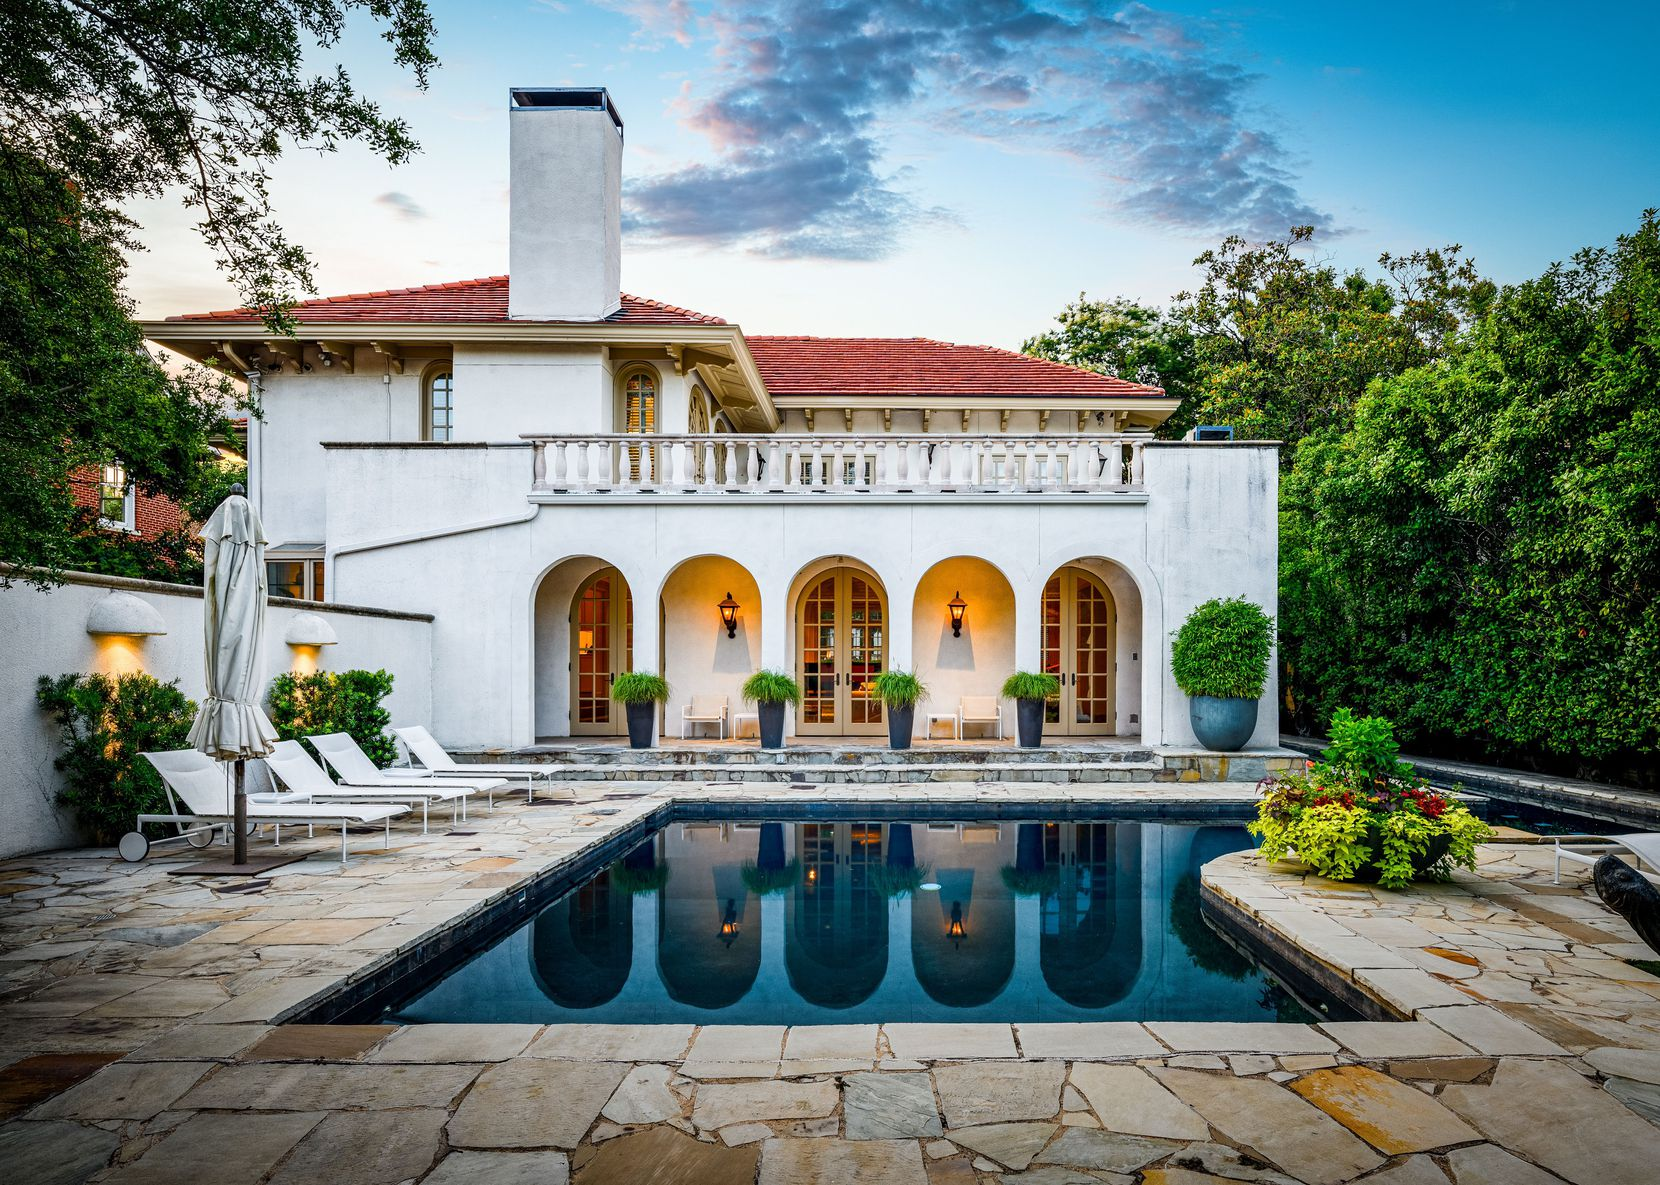 This 1920s family home at 3639 Beverly Drive in Highland Park boasts Spanish architectural and design elements well-preserved for nearly 100 years.